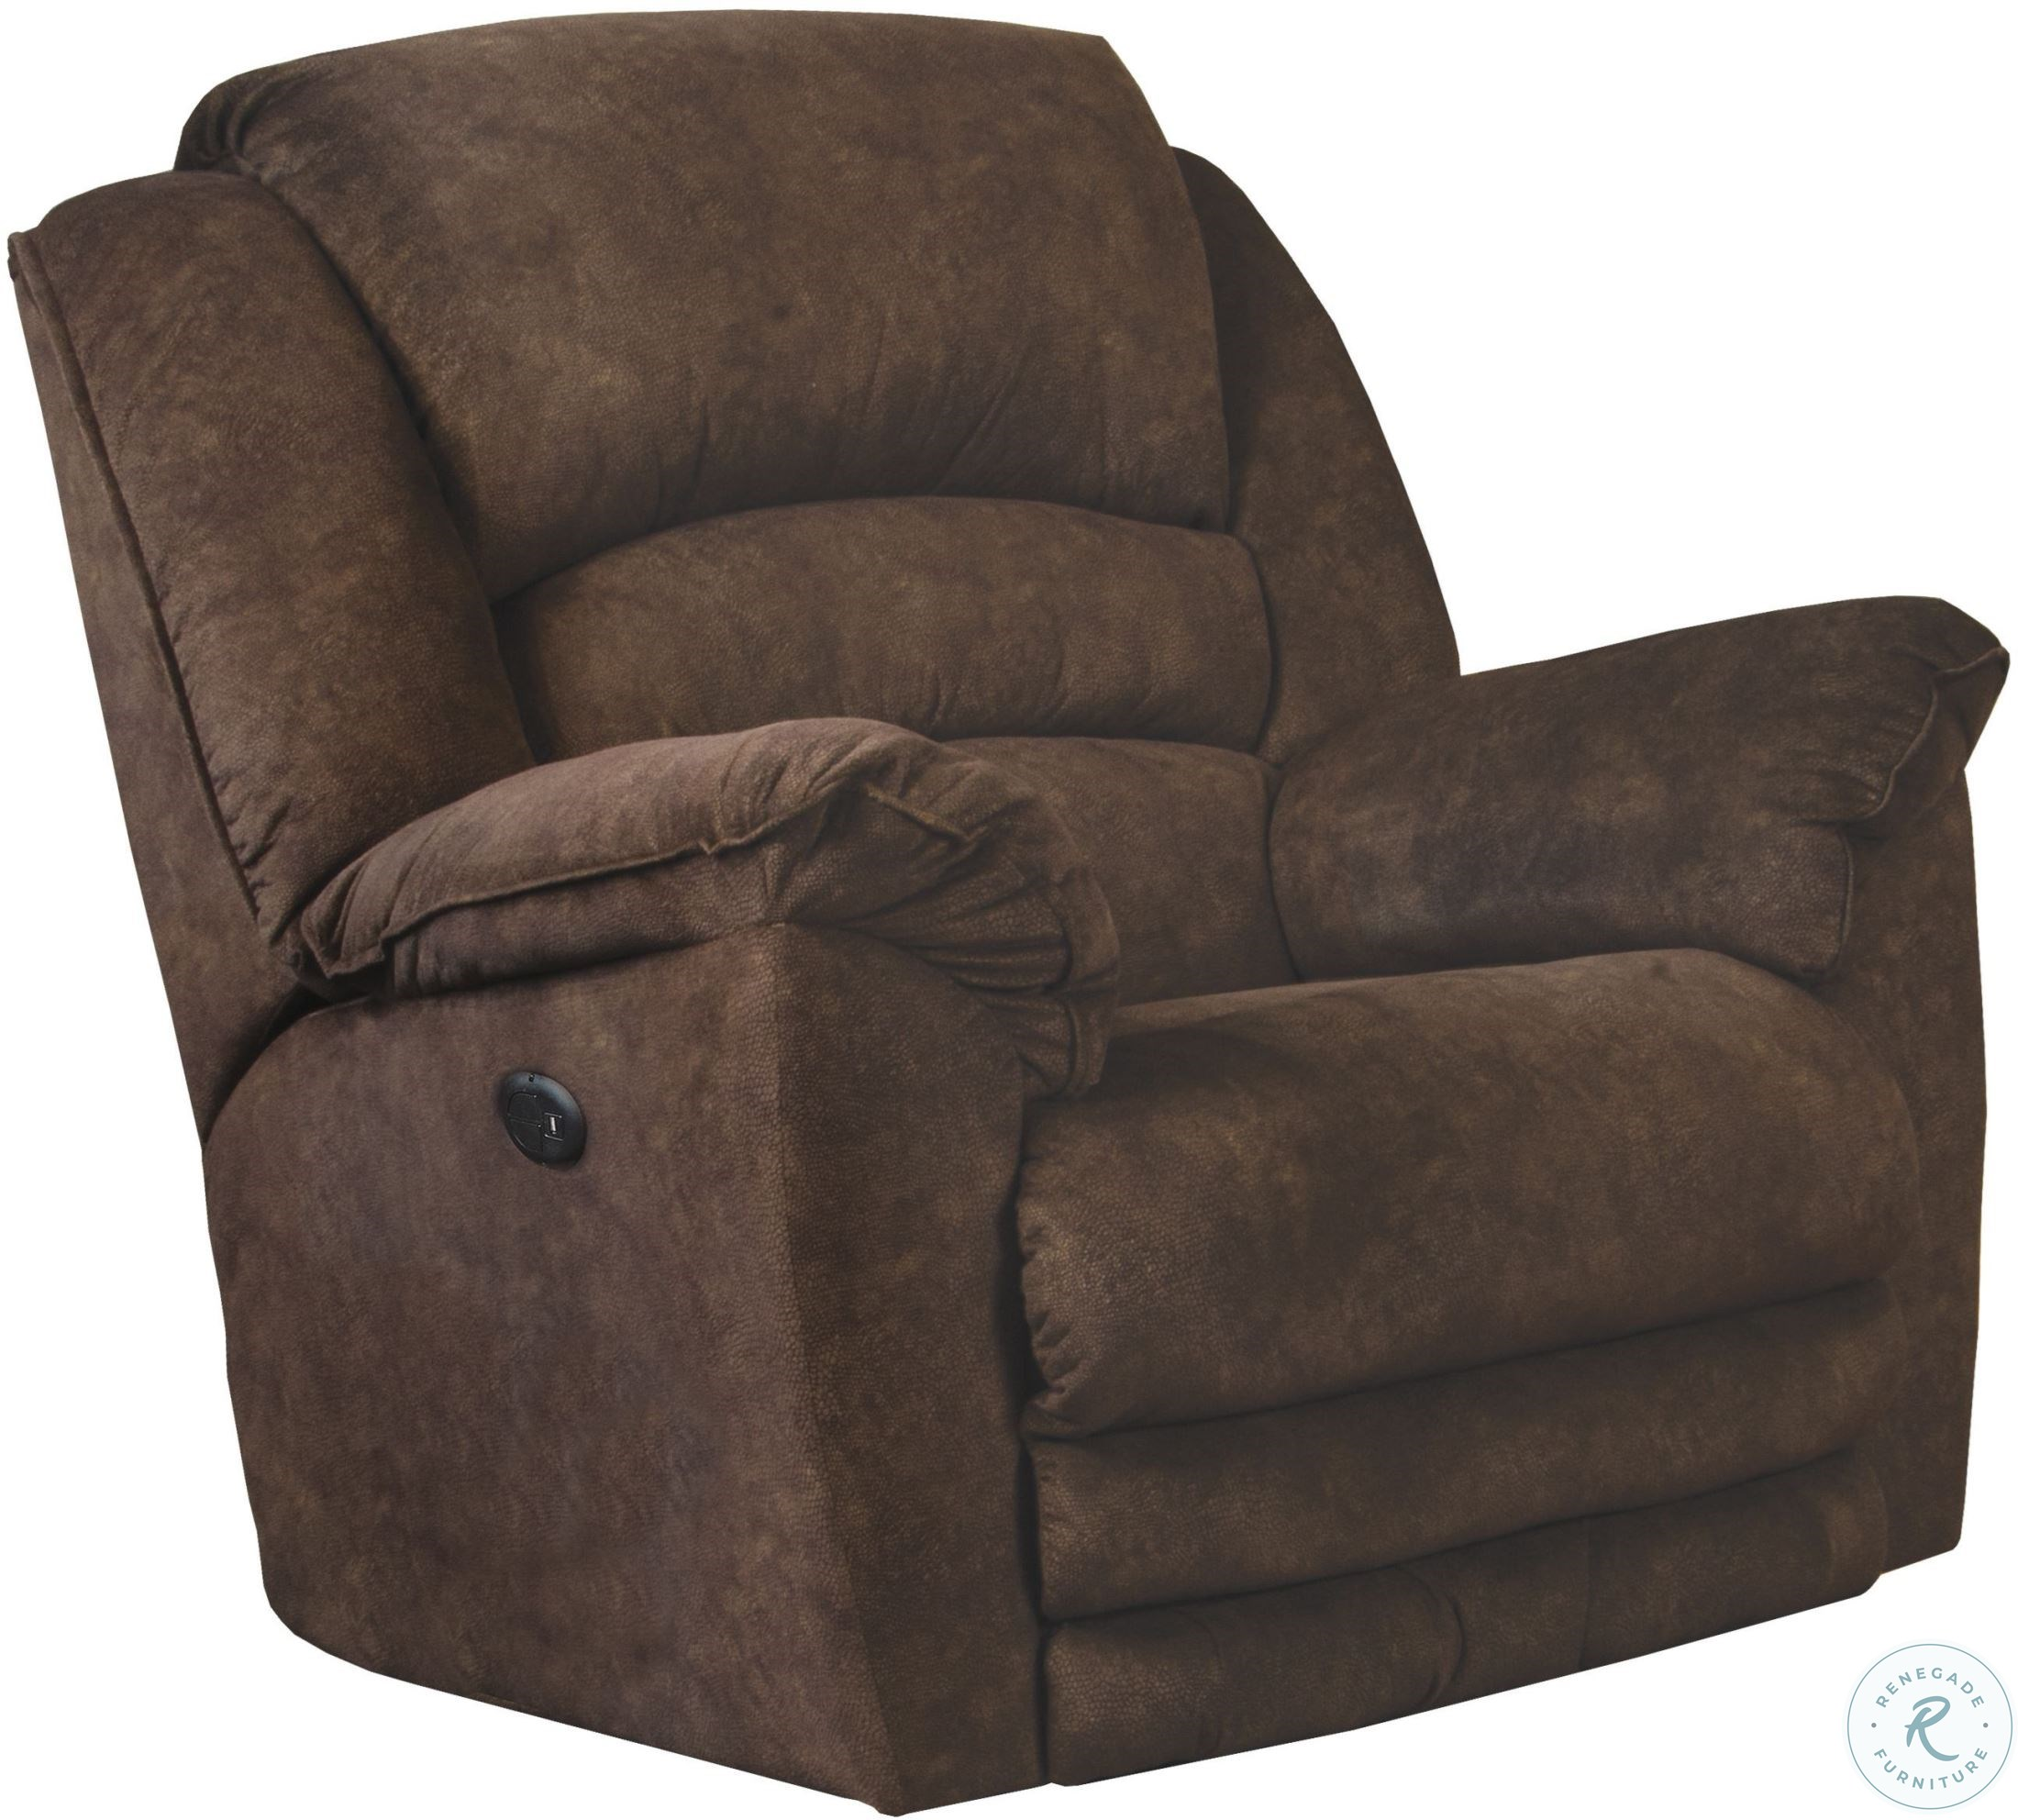 Ludden Cocoa Power Rocker Recliner From Ashley 8110498 Coleman Furniture